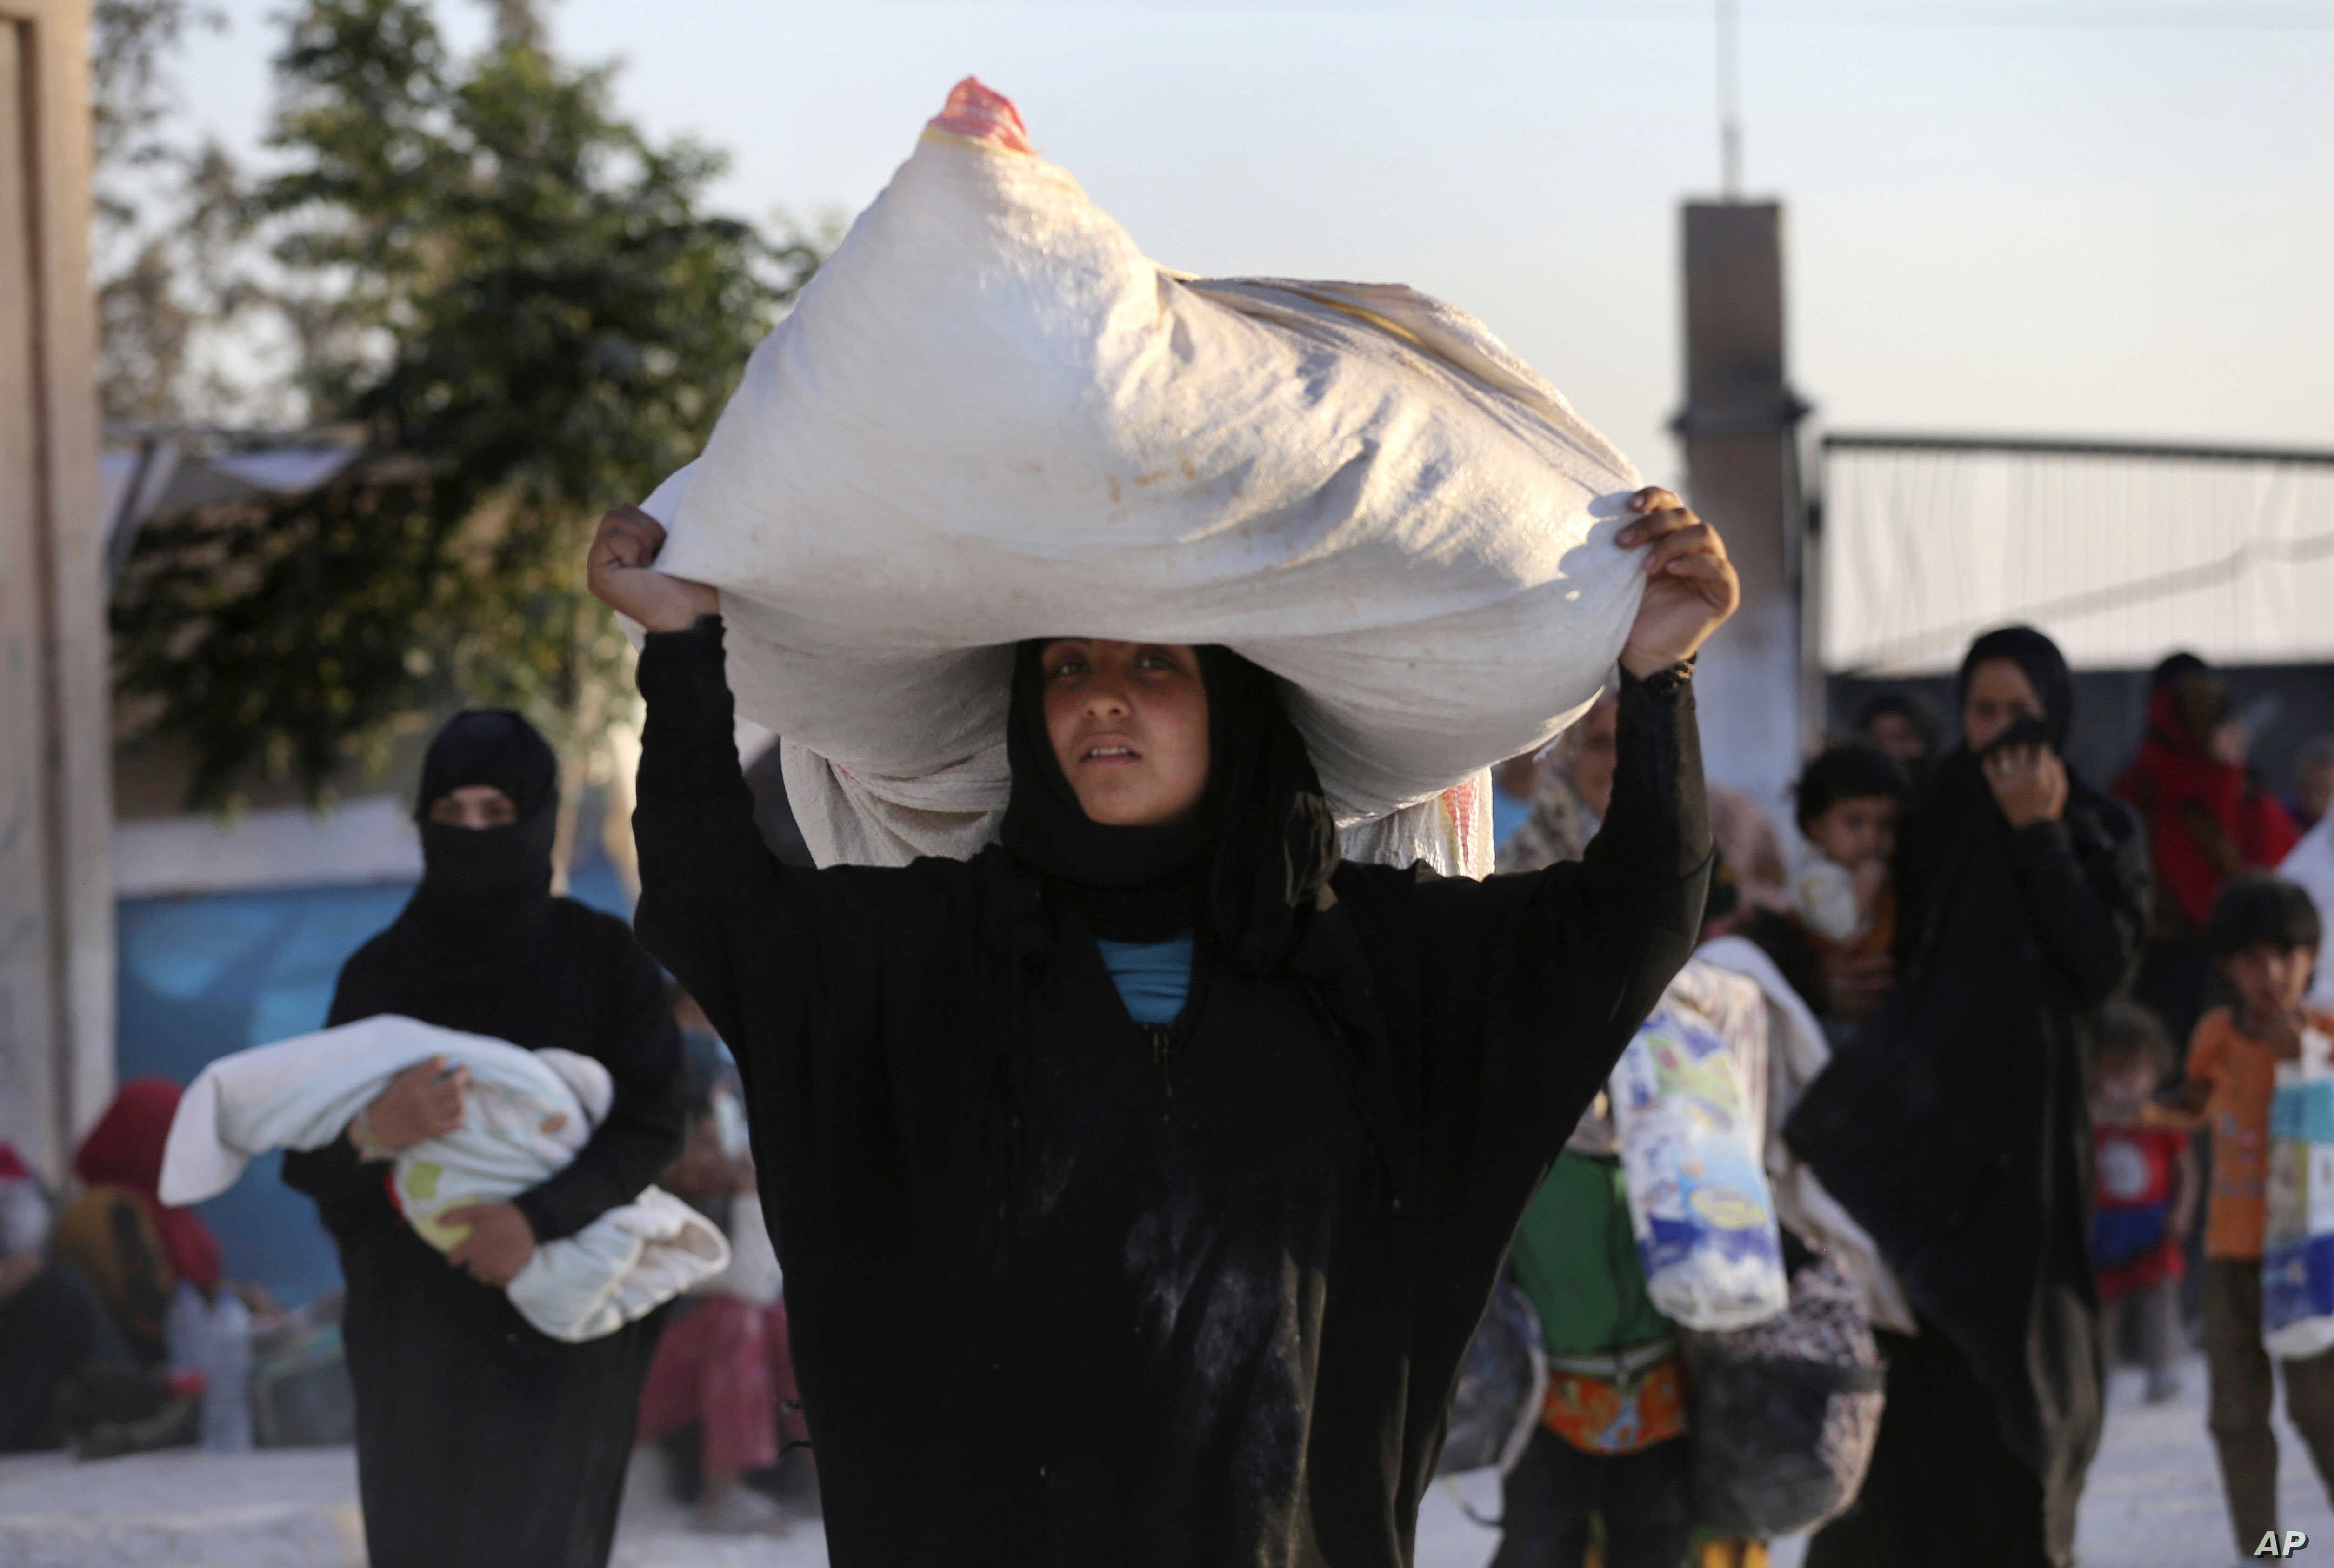 A Syrian woman who fled with her family the battle between U.S.-backed Syrian Democratic Forces (SDF) and the Islamic State militants from Raqqa city, carries her belongings upon her arrival at a refugee camp, in Ain Issa, July 24, 2017.